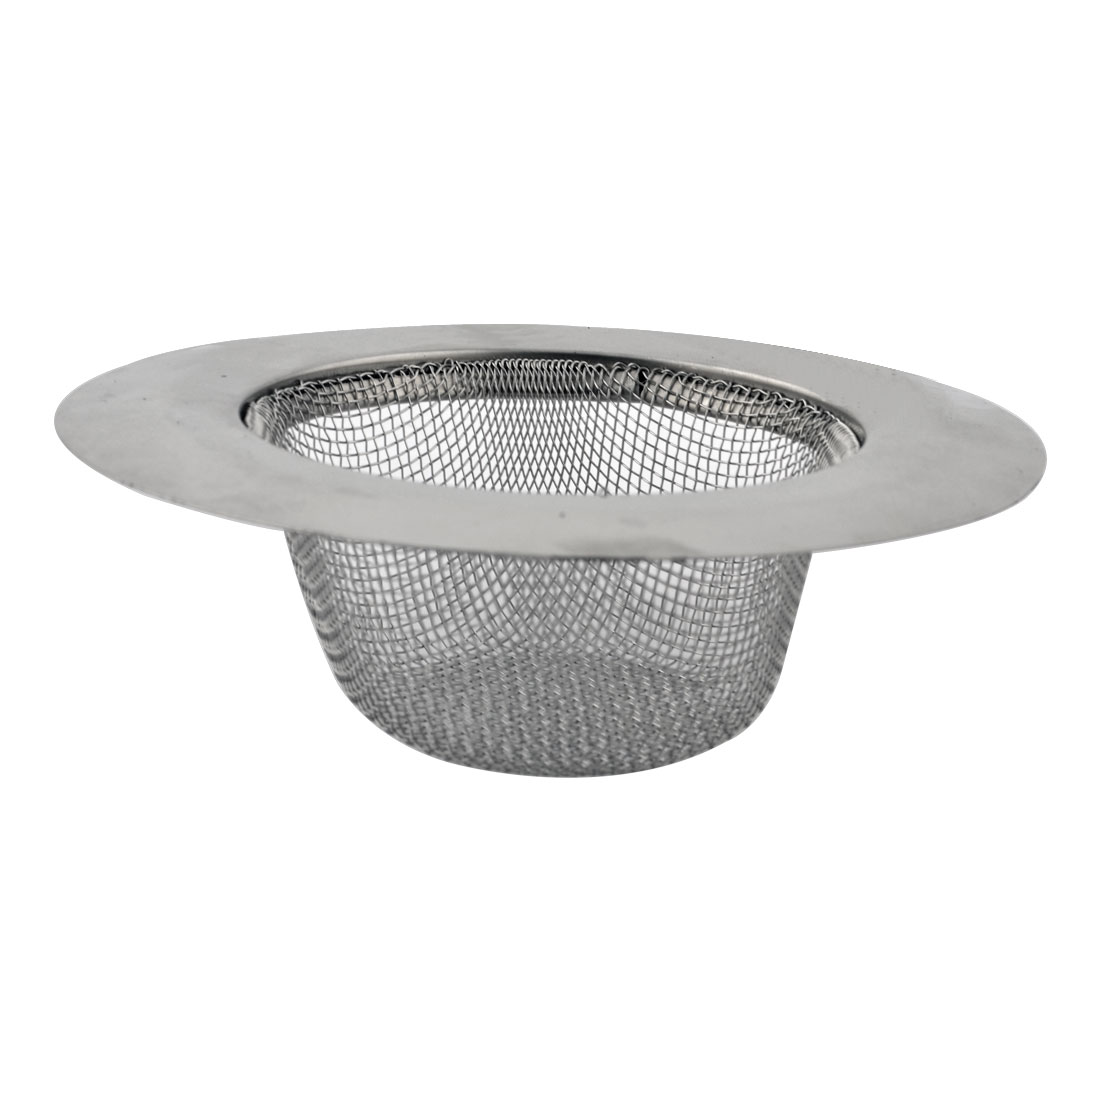 Home Kitchen Stainless Steel Food Stopper Water Sink Basin Strainer Silver Tone